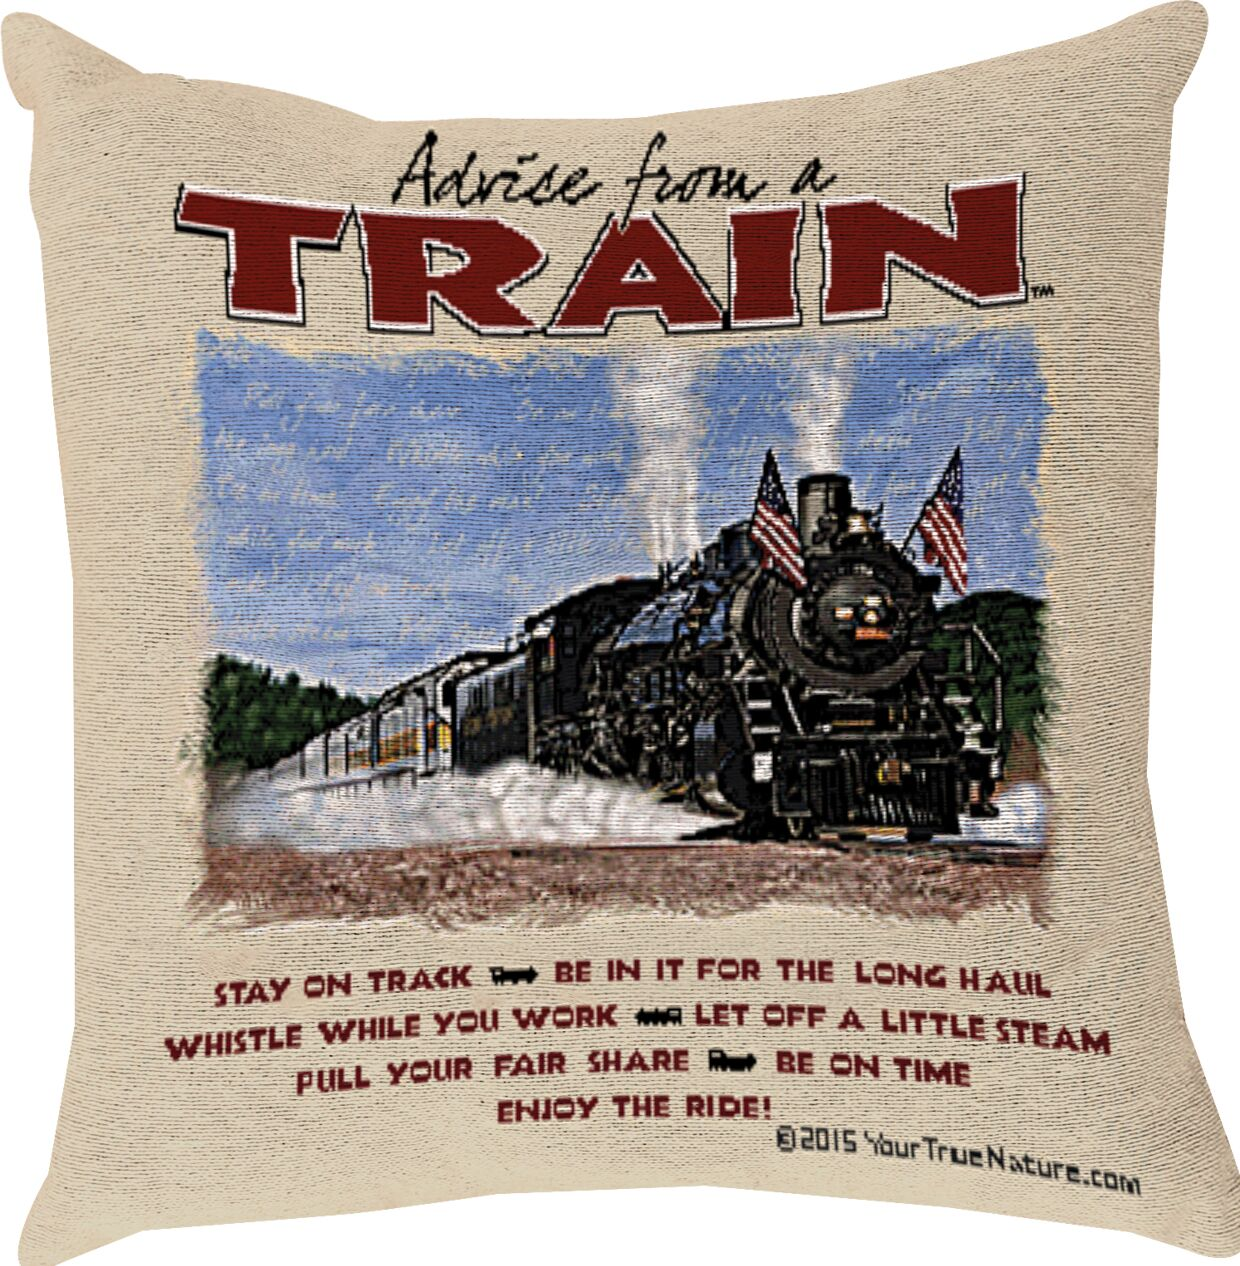 Advice from a Train Throw Pillow